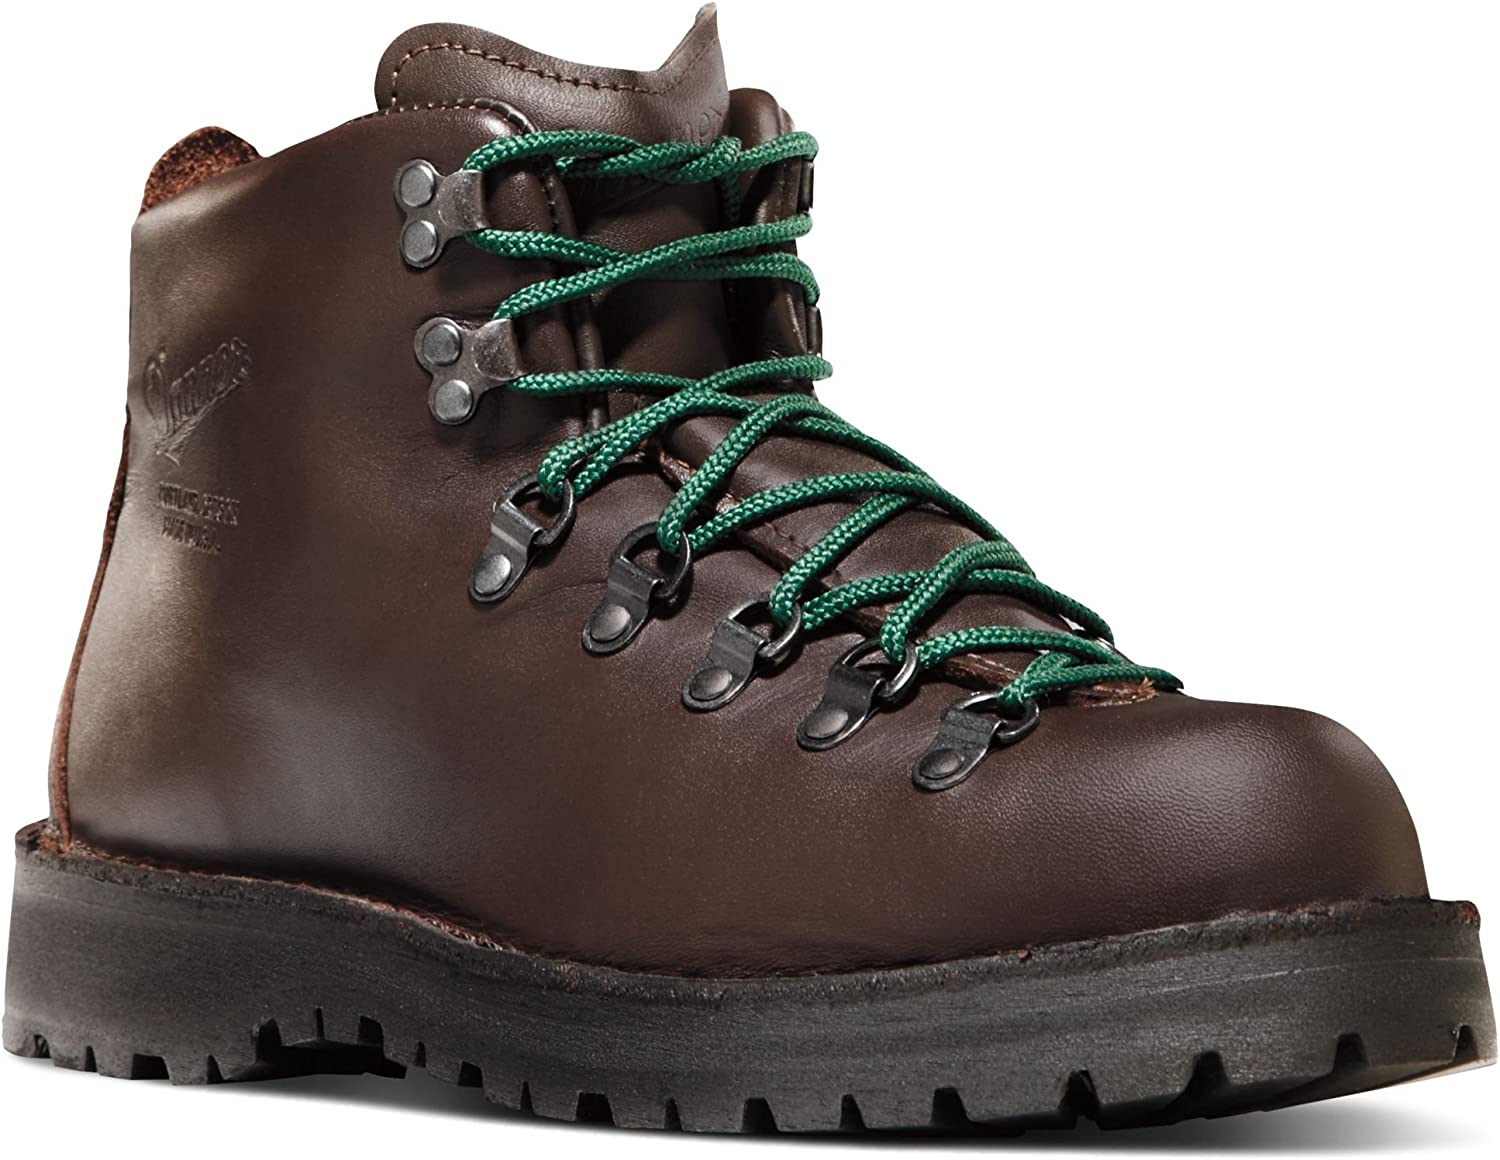 Danner Mountain Light II 5 Brown Vibram 30800 Sole Outdoor Boots Downhill Braking and Side-Hill Traction